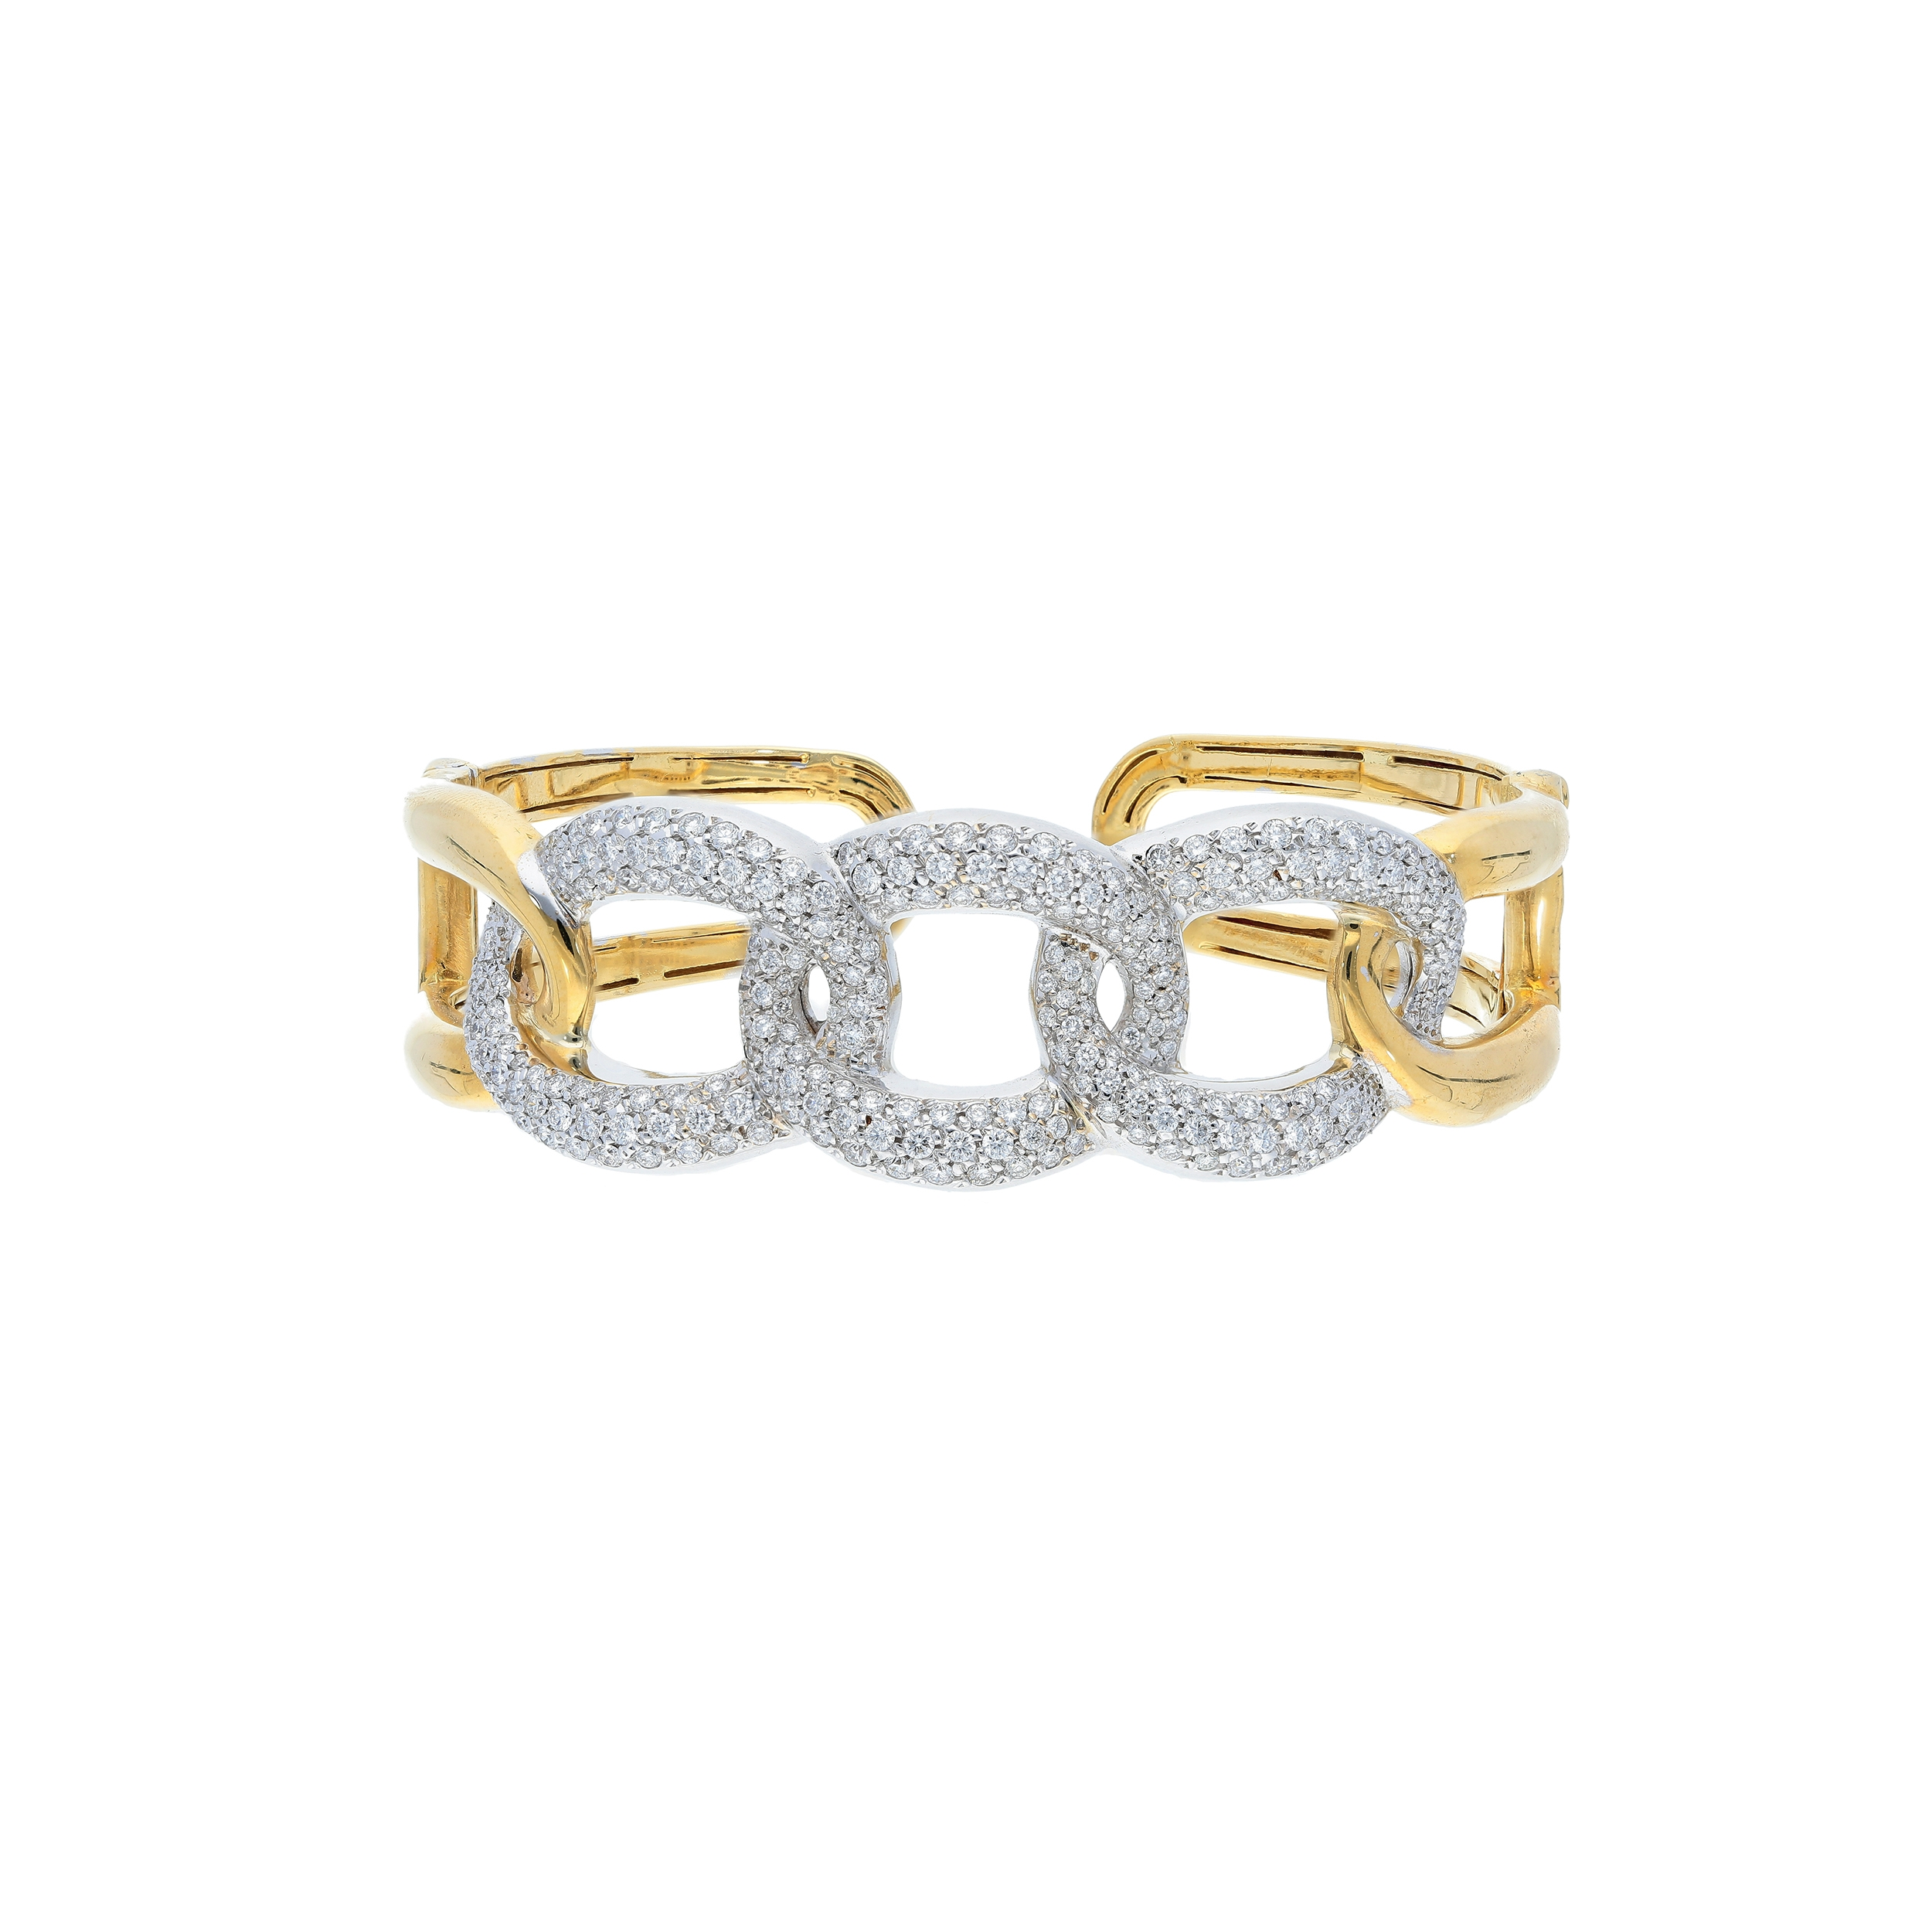 Bangle linked pave diamonds in 18 kt yellow and white gold